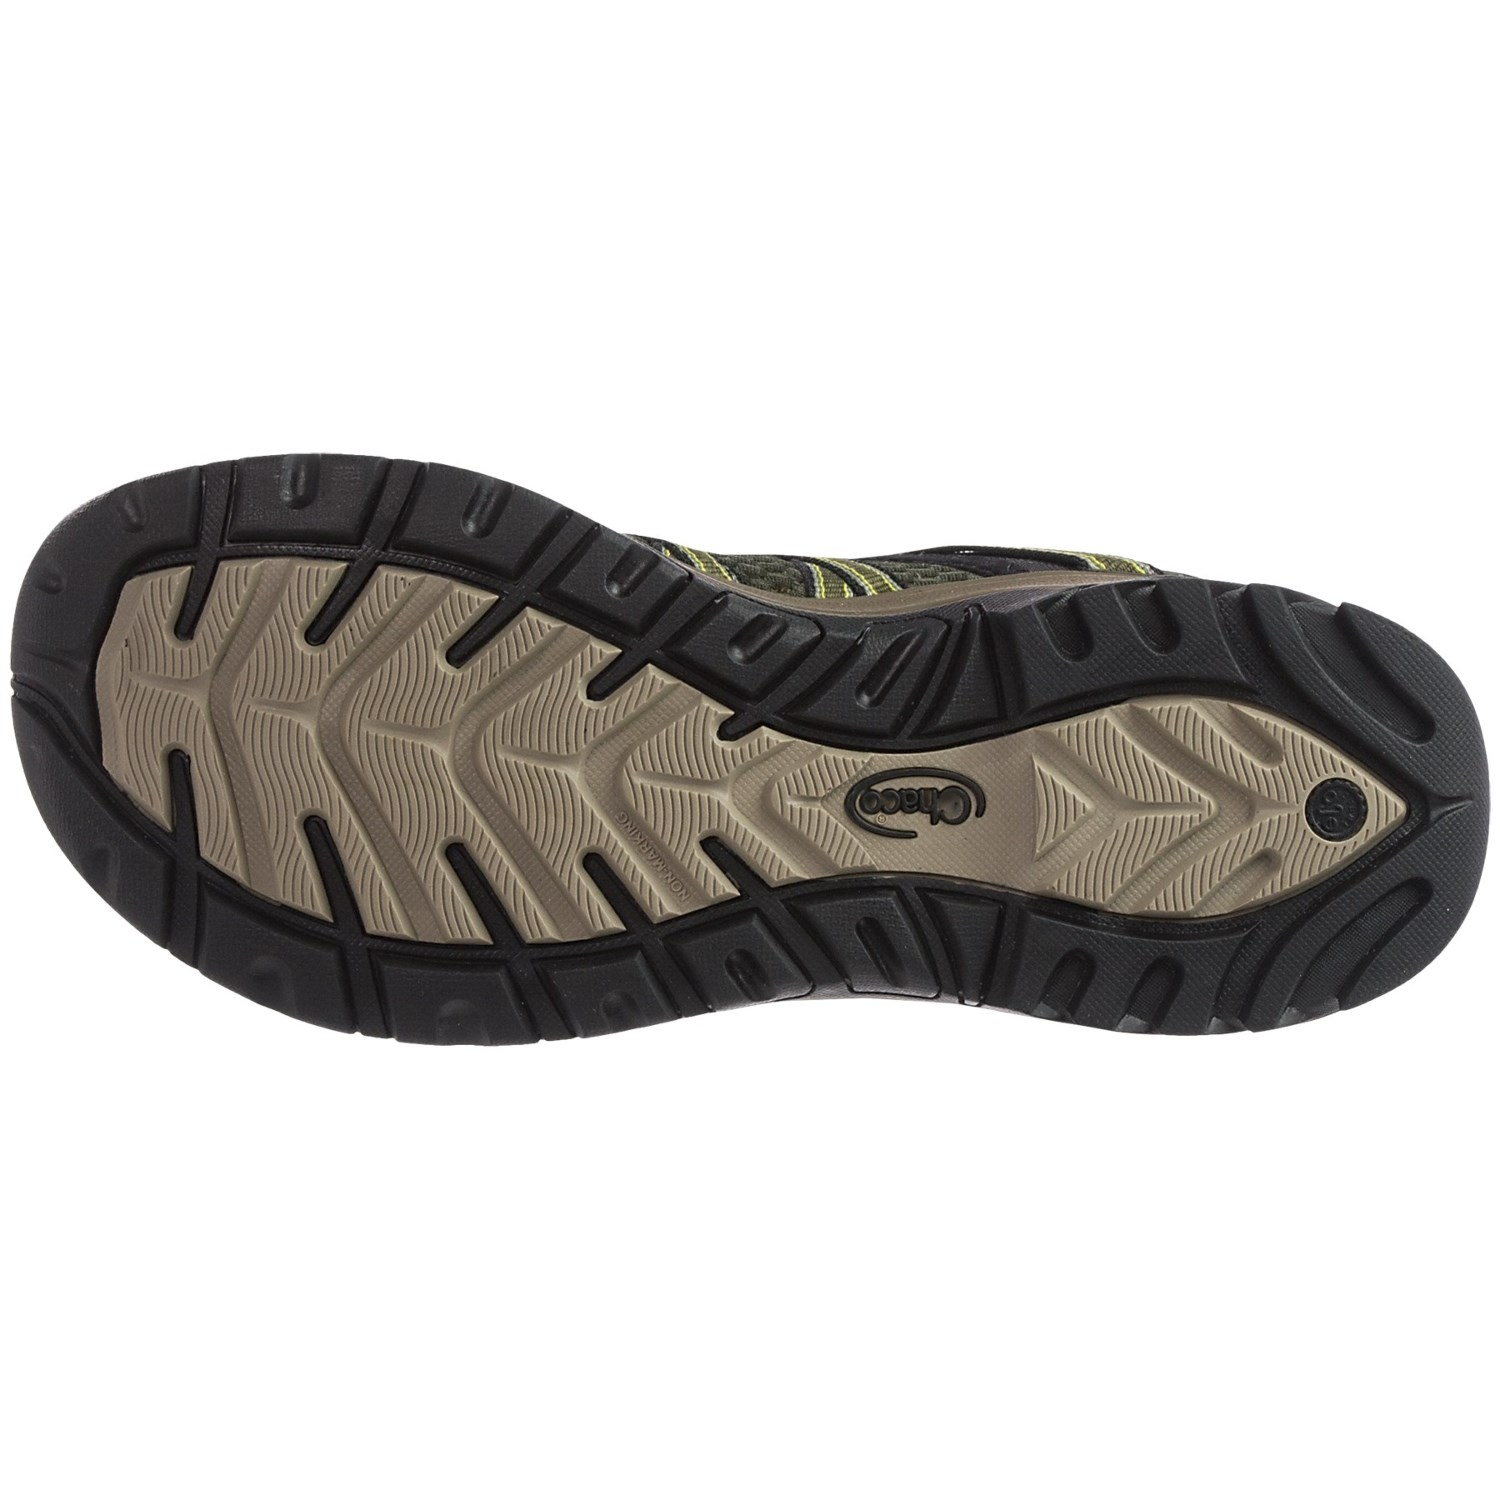 6f707892f28ca Chaco OutCross Evo 2 Water Shoes (For Men) - Save 45%